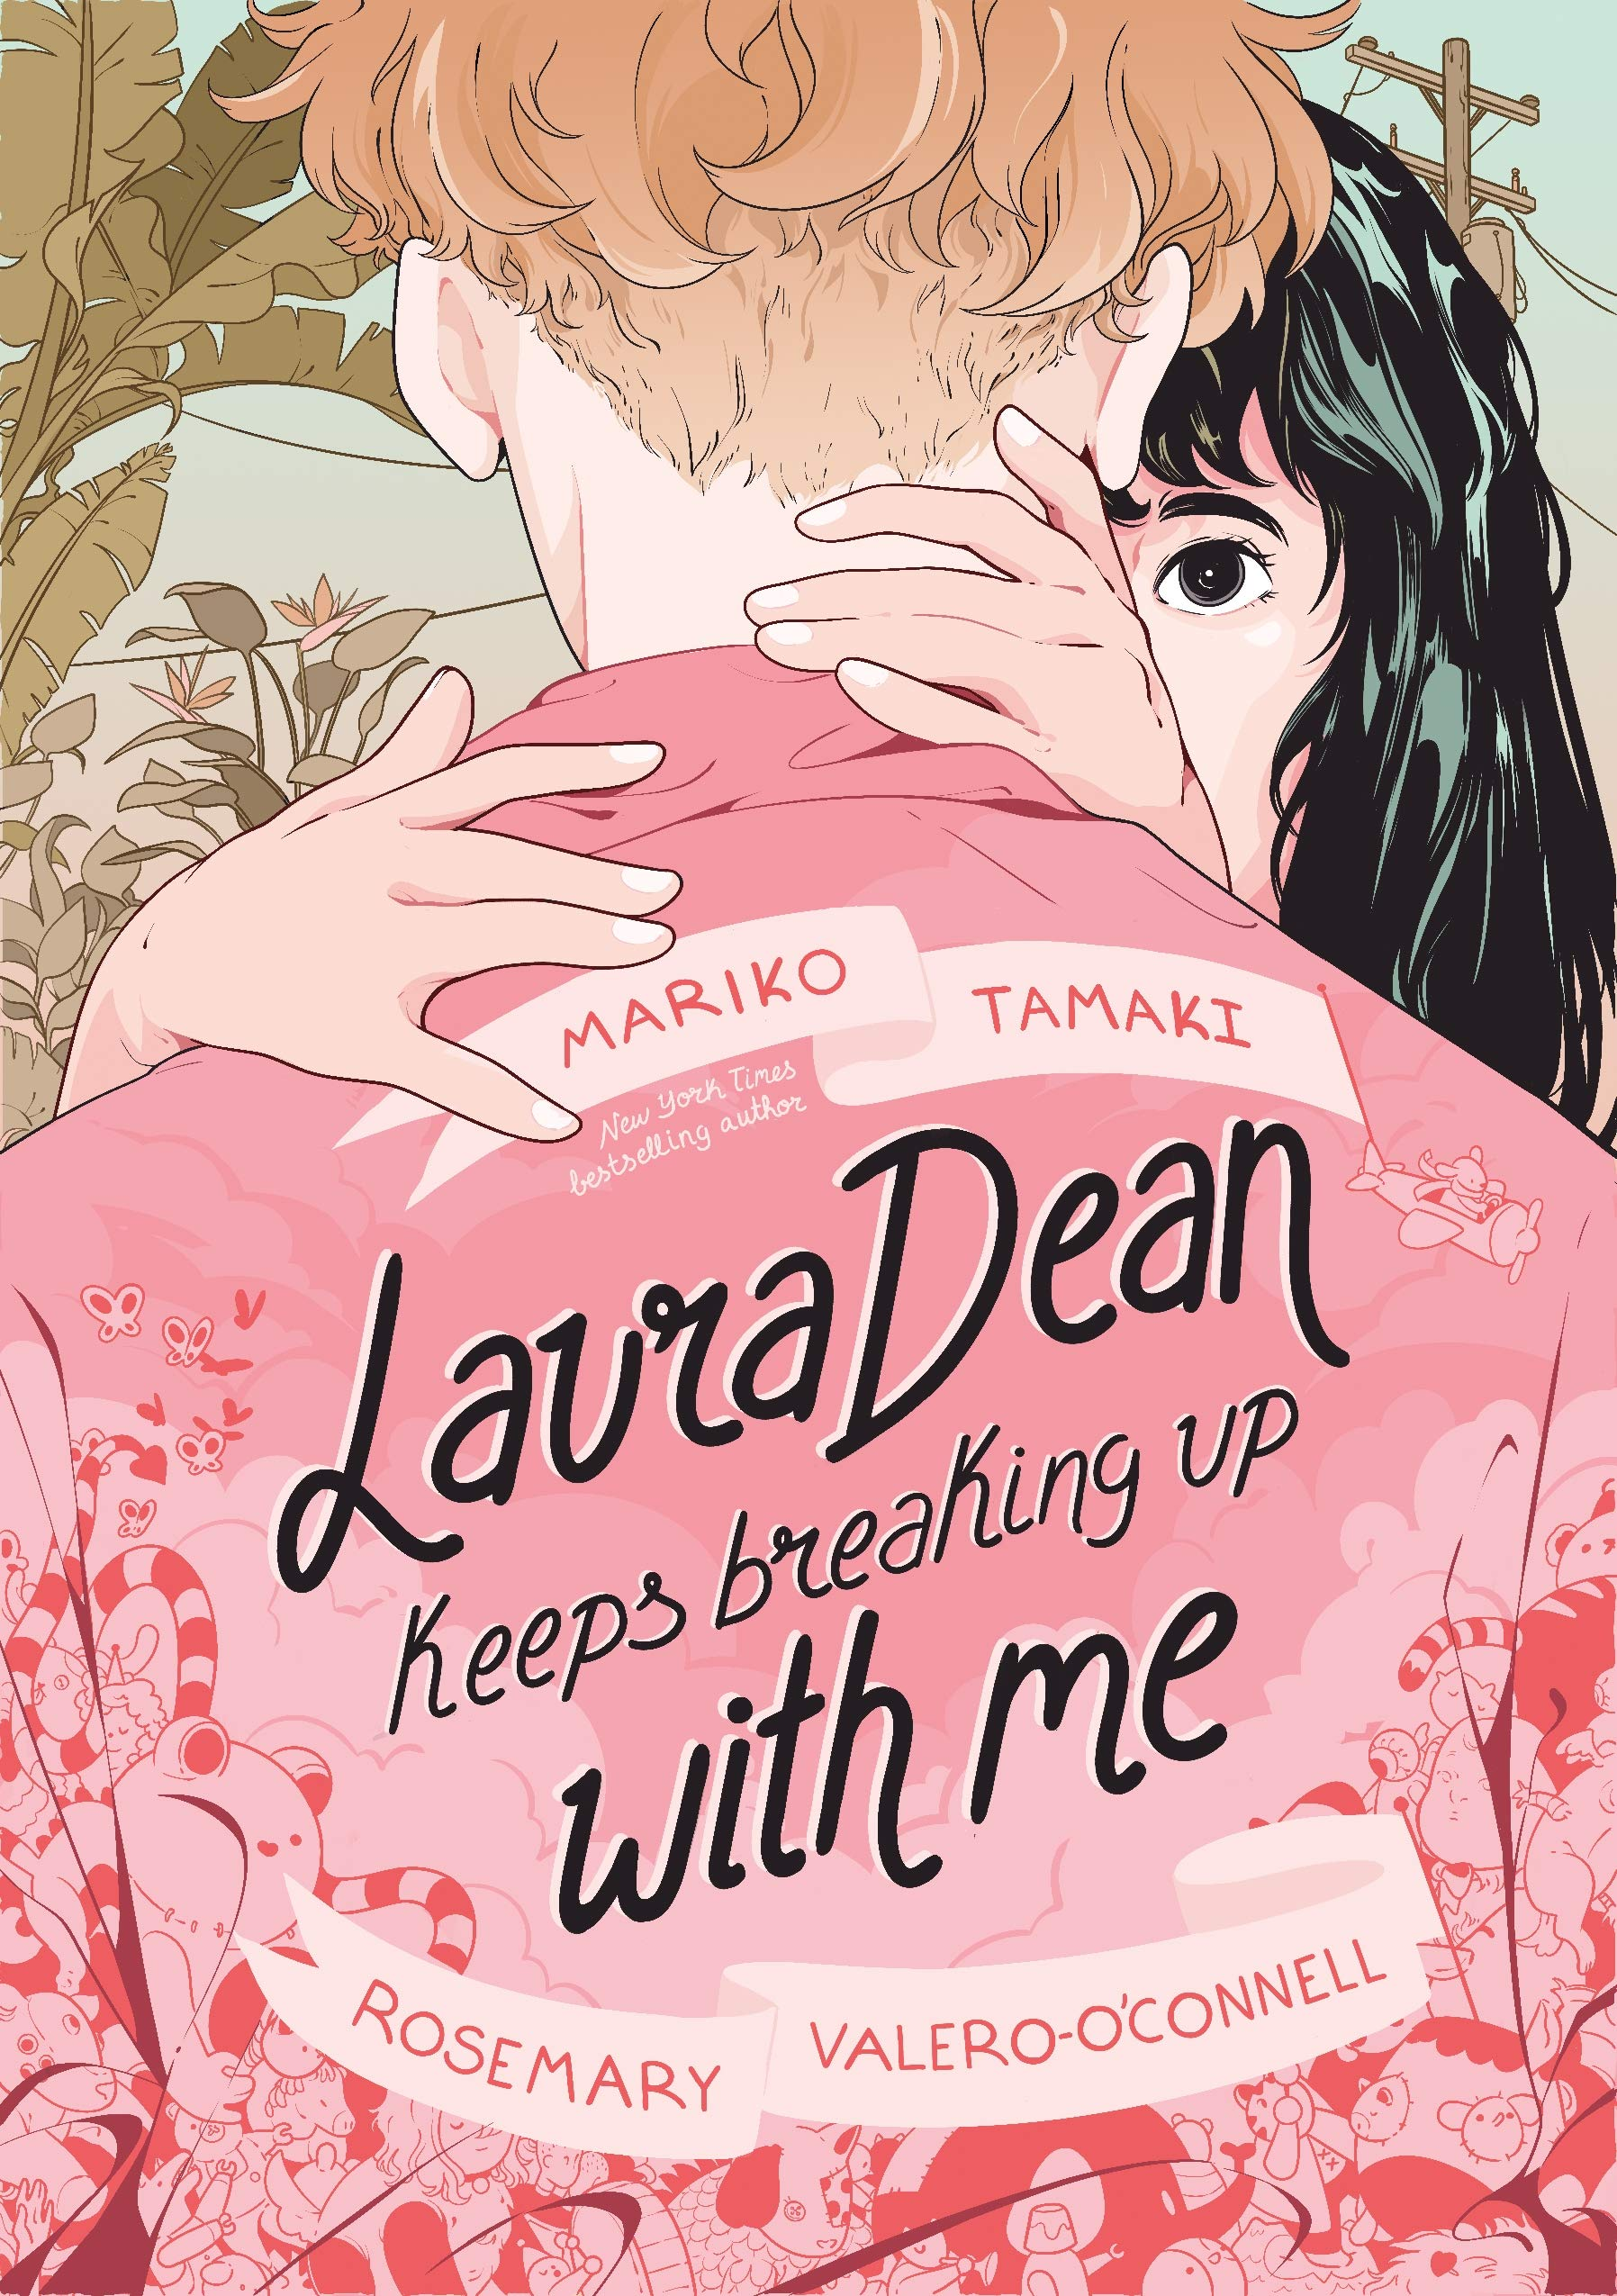 Laura Dean Keeps Breaking Up with Me: Amazon.in: Tamaki, Mariko: Books